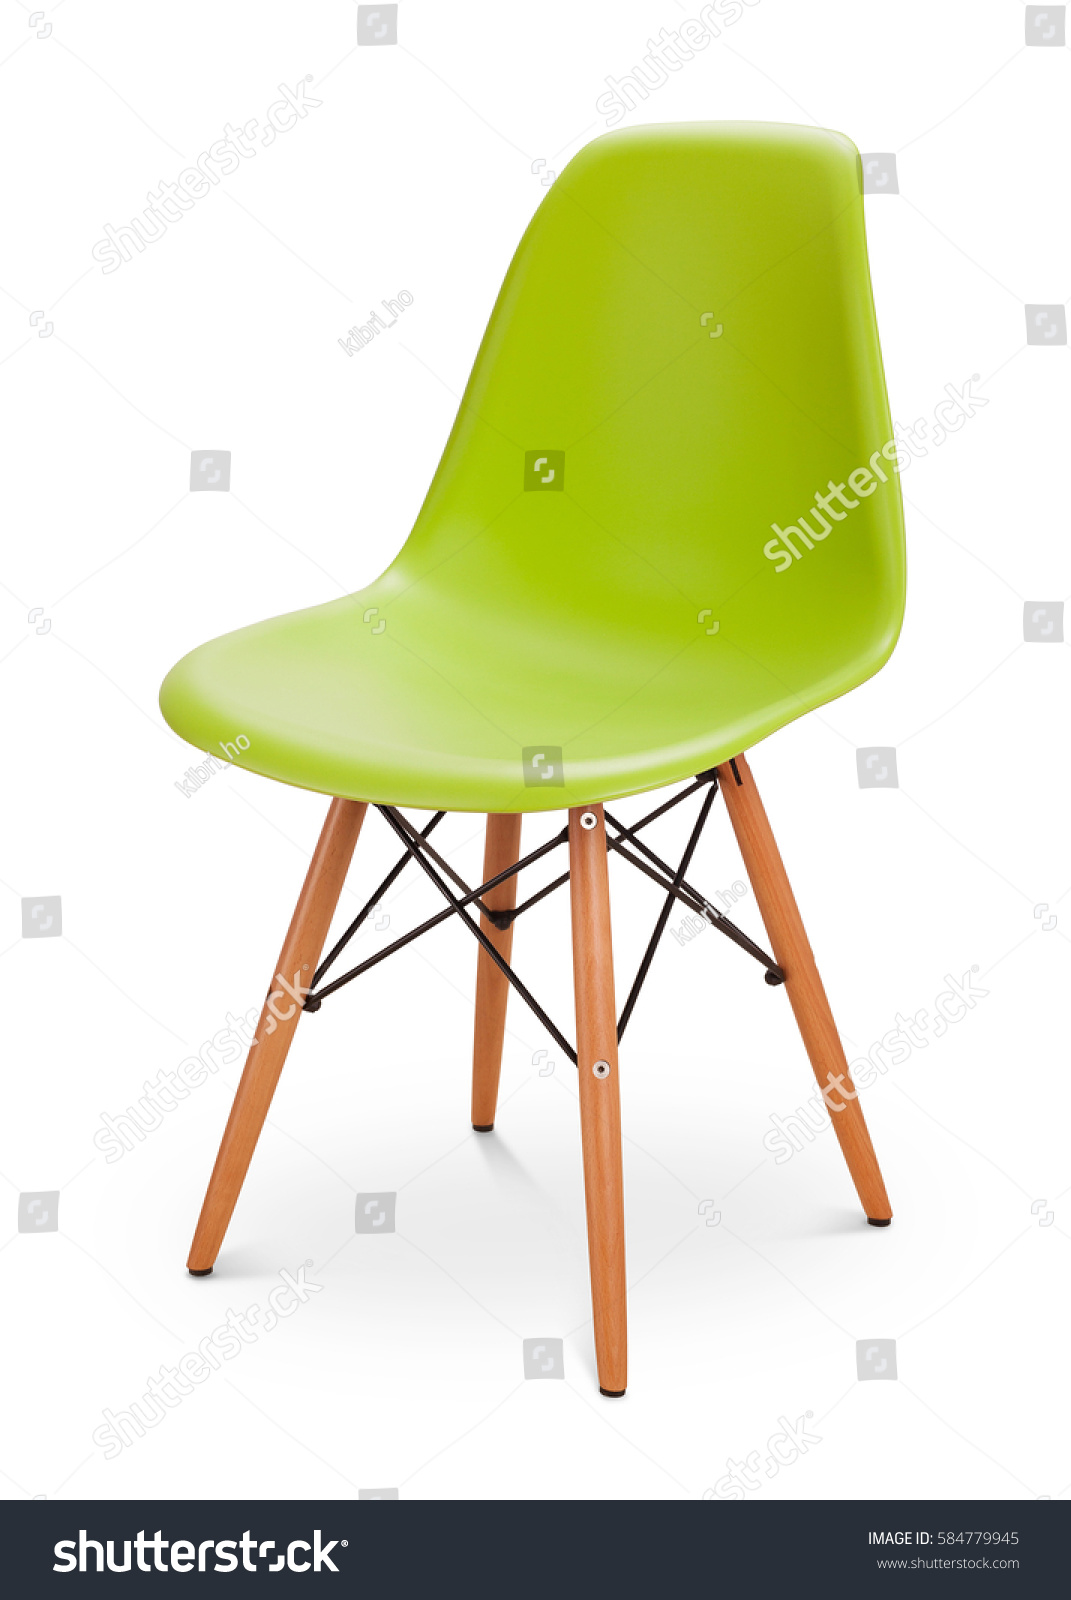 Photo Bowel Movement Green Stool Images What Color Will